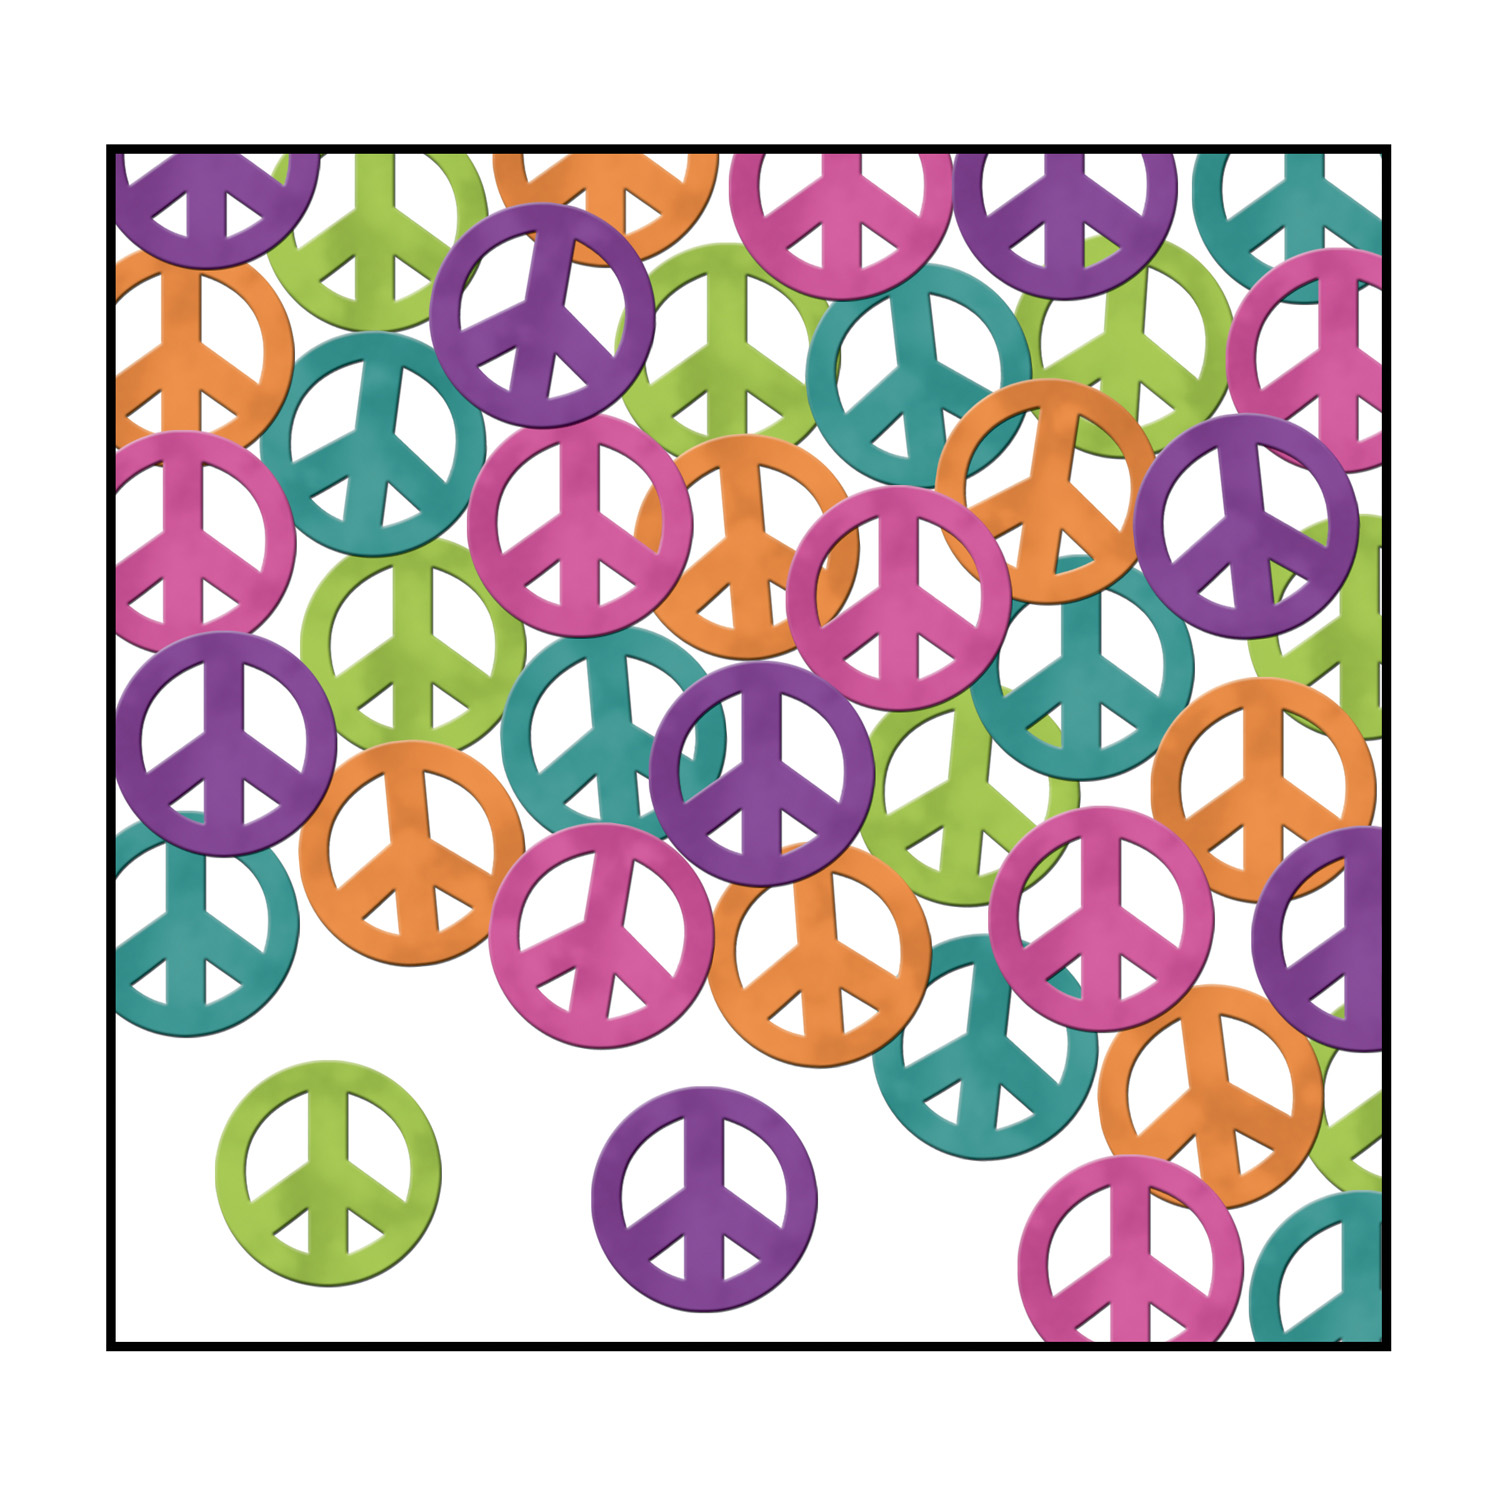 Fanci-Fetti Peace Signs (Pack of 12) Fanci-Fetti, Peace Sign, 1960s Decor, Wholesale party supplies, Cheap peace signs, Groovy decorations, Cheap decor, Retro supplies